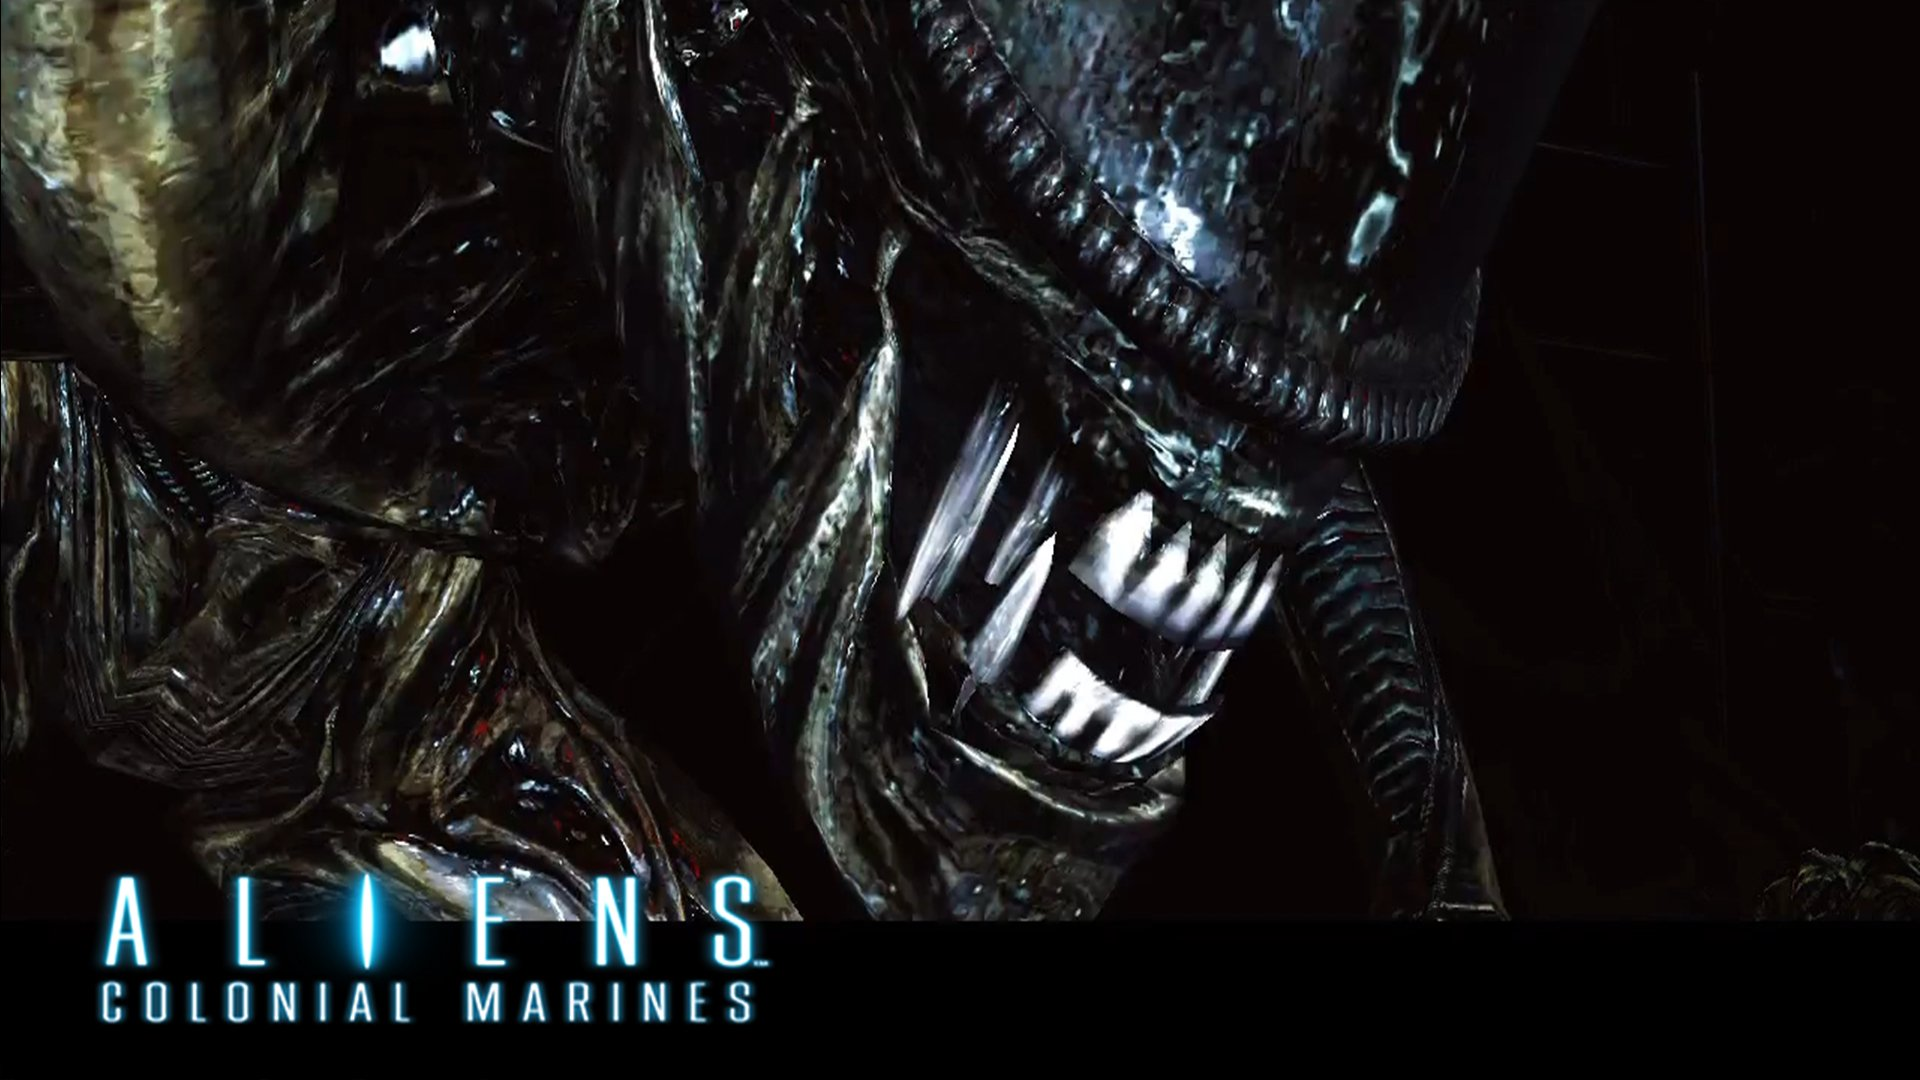 The Great Wall Movie Wallpaper Hd Aliens Colonial Marines Full Hd Wallpaper And Background